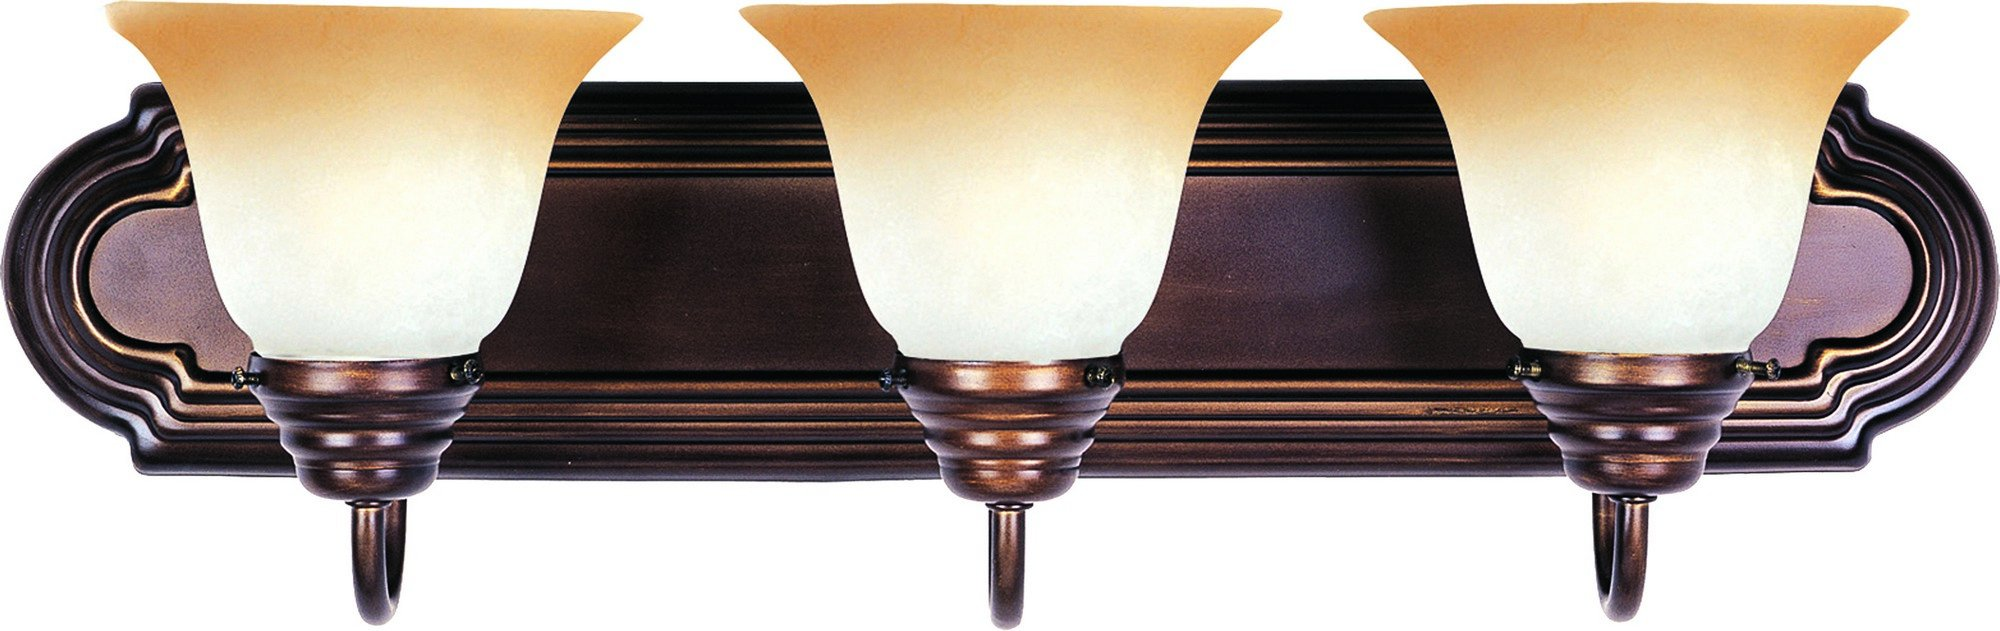 Maxim 8013WSOI Essentials 3-Light Bath Vanity, Oil Rubbed Bronze Finish, Wilshire Glass, MB Incandescent Incandescent Bulb , 60W Max., Dry Safety Rating, Standard Dimmable, Metal Shade Material, Rated Lumens